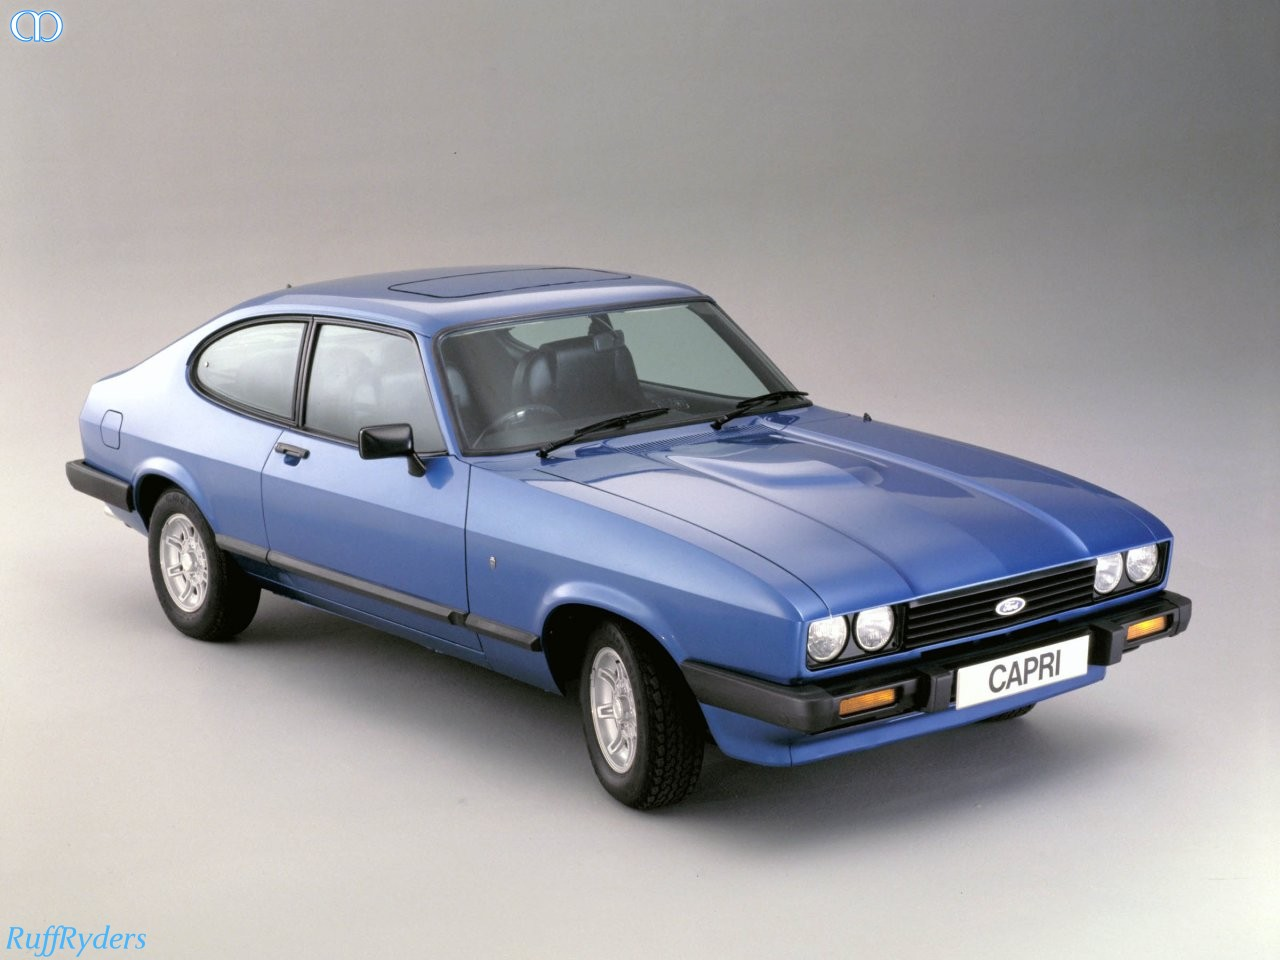 Ford capri 1984 photo - 4